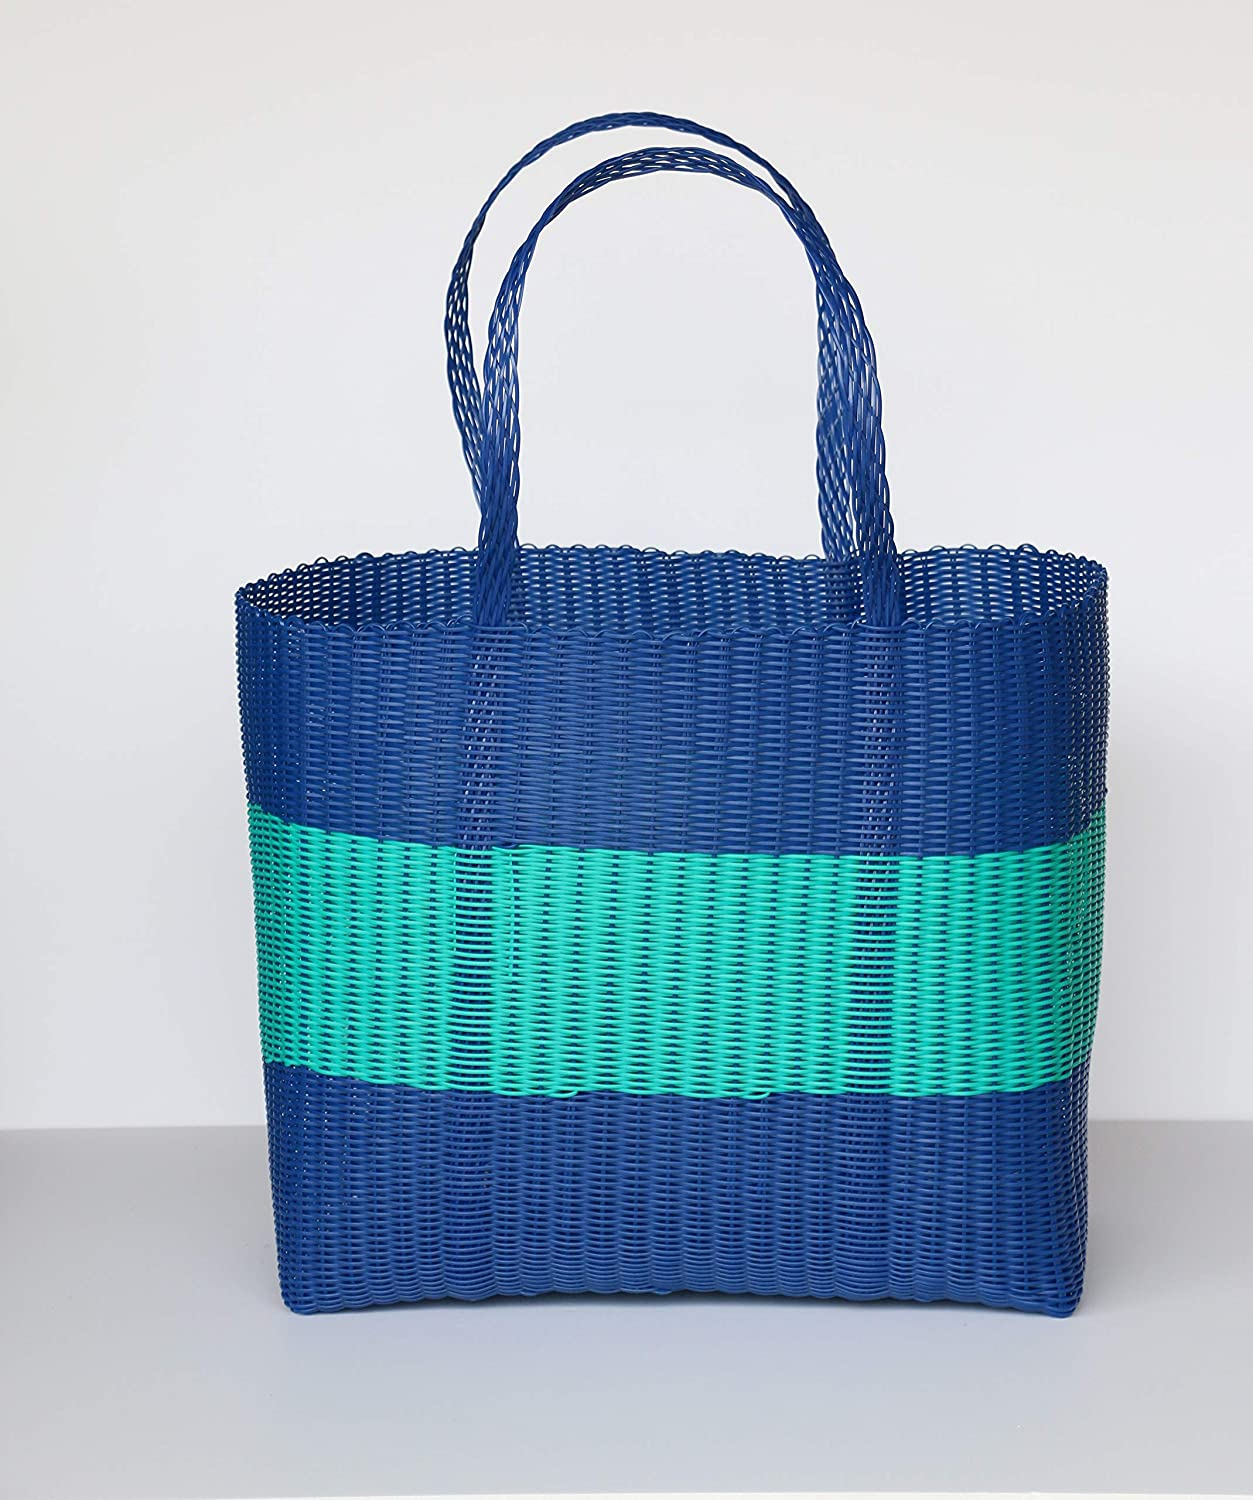 blueee with Turquois Stripe Ex Large Hand Made Woven Plastic Basket. Waterproof. Beach Bag, Picnic, Shopping Bag and Fashion Tote (Black, Ex Large)